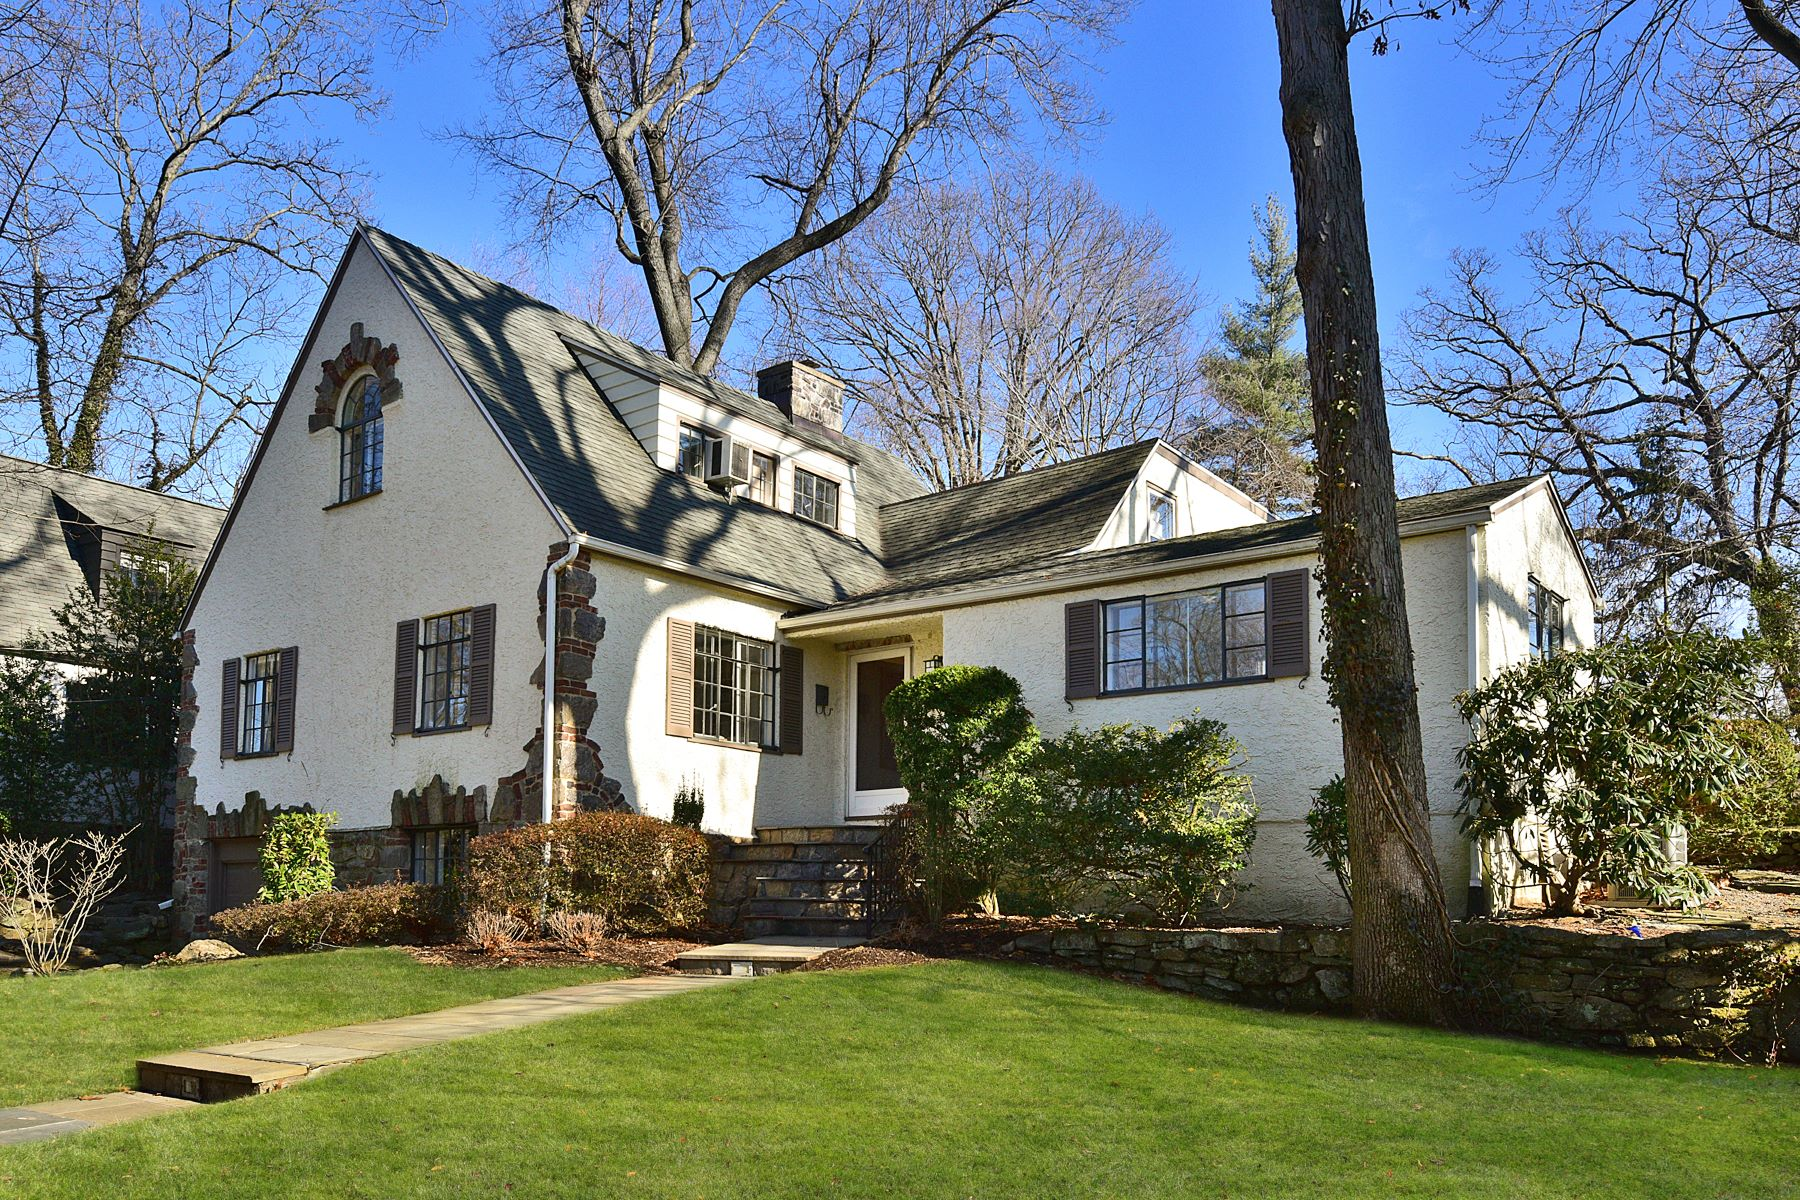 Single Family Home for Sale at Downtown Village Charmer 3 Concord Avenue, Larchmont, New York, 10538 United States